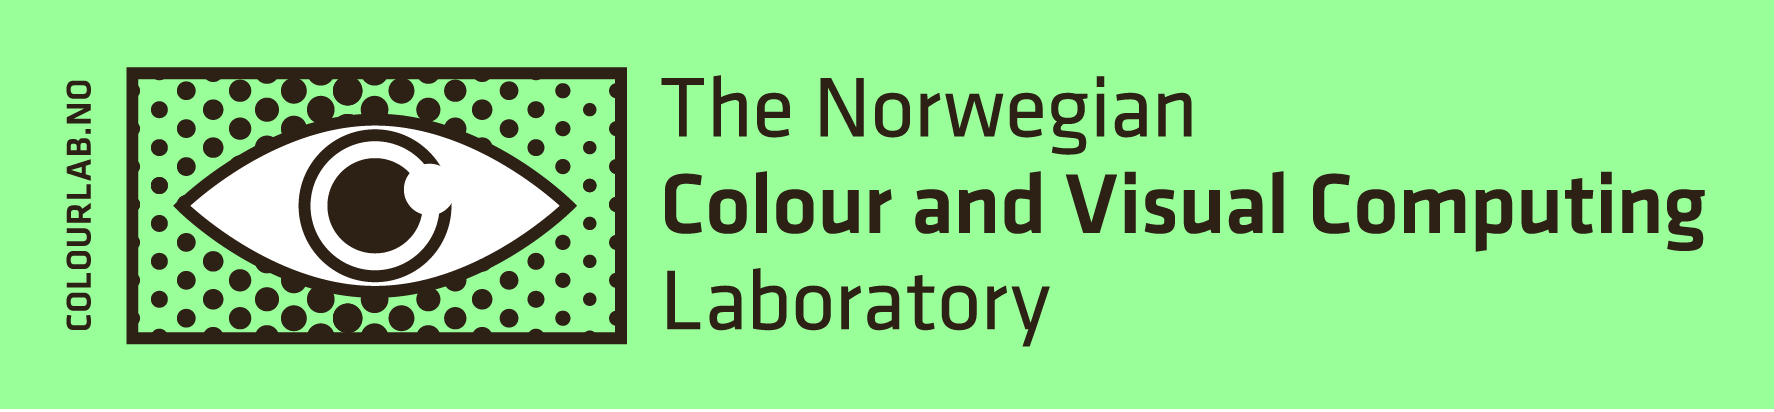 ColourLab